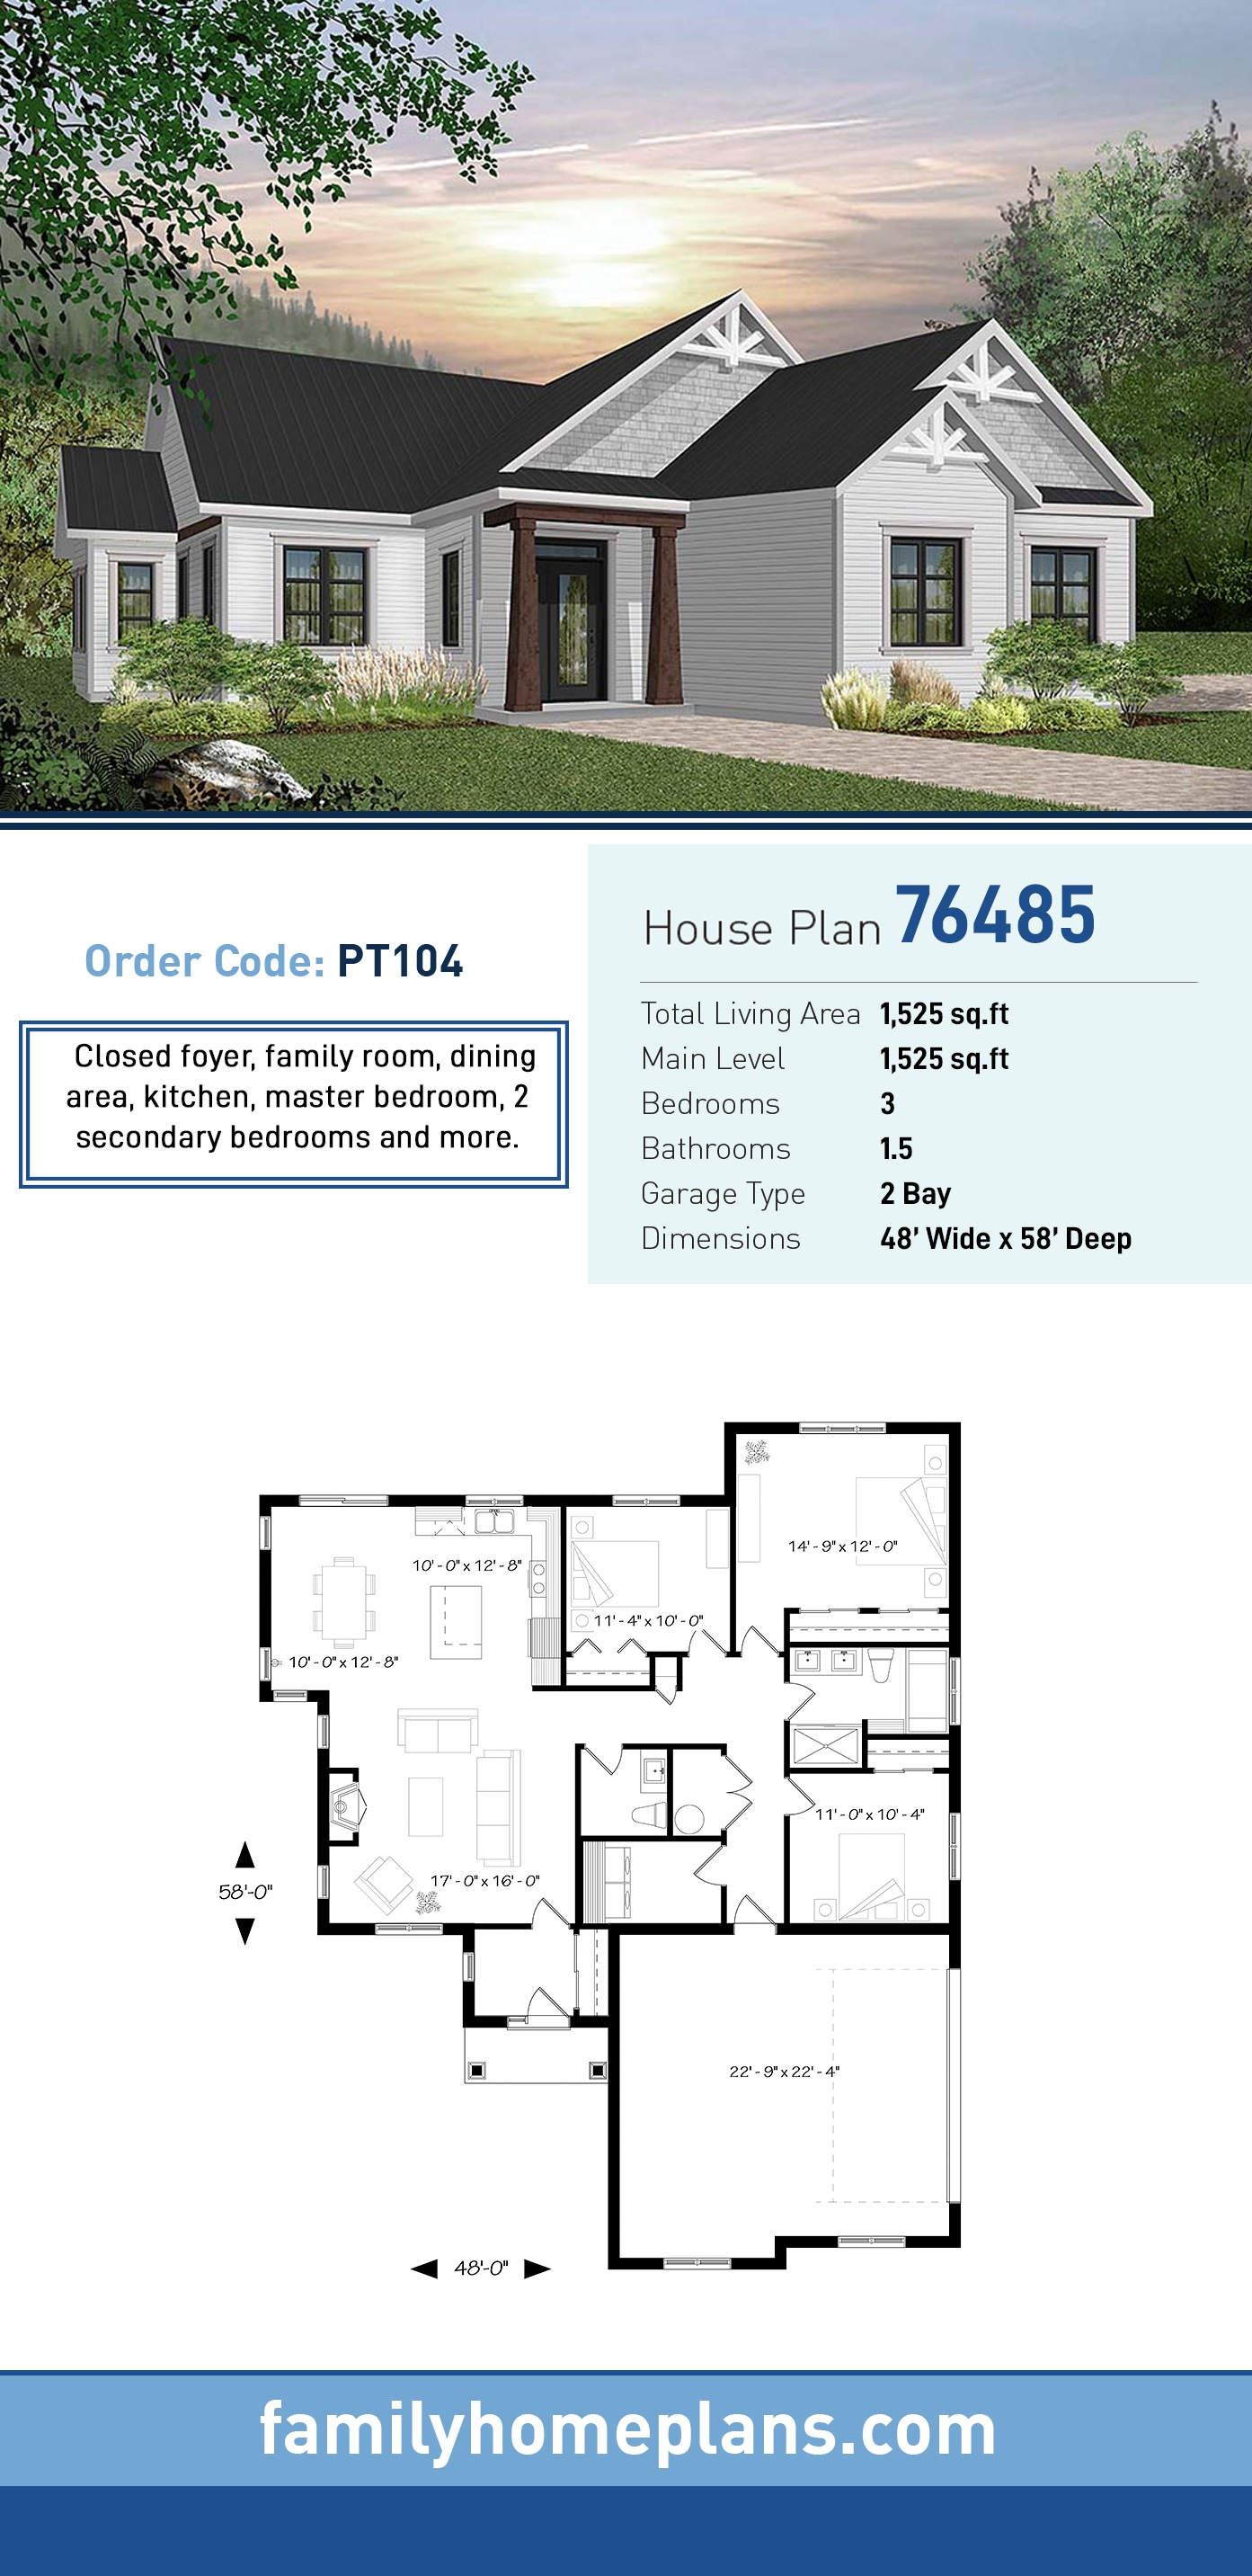 Country, Craftsman, Farmhouse, Ranch, Traditional House Plan 76485 with 3 Beds, 2 Baths, 2 Car Garage